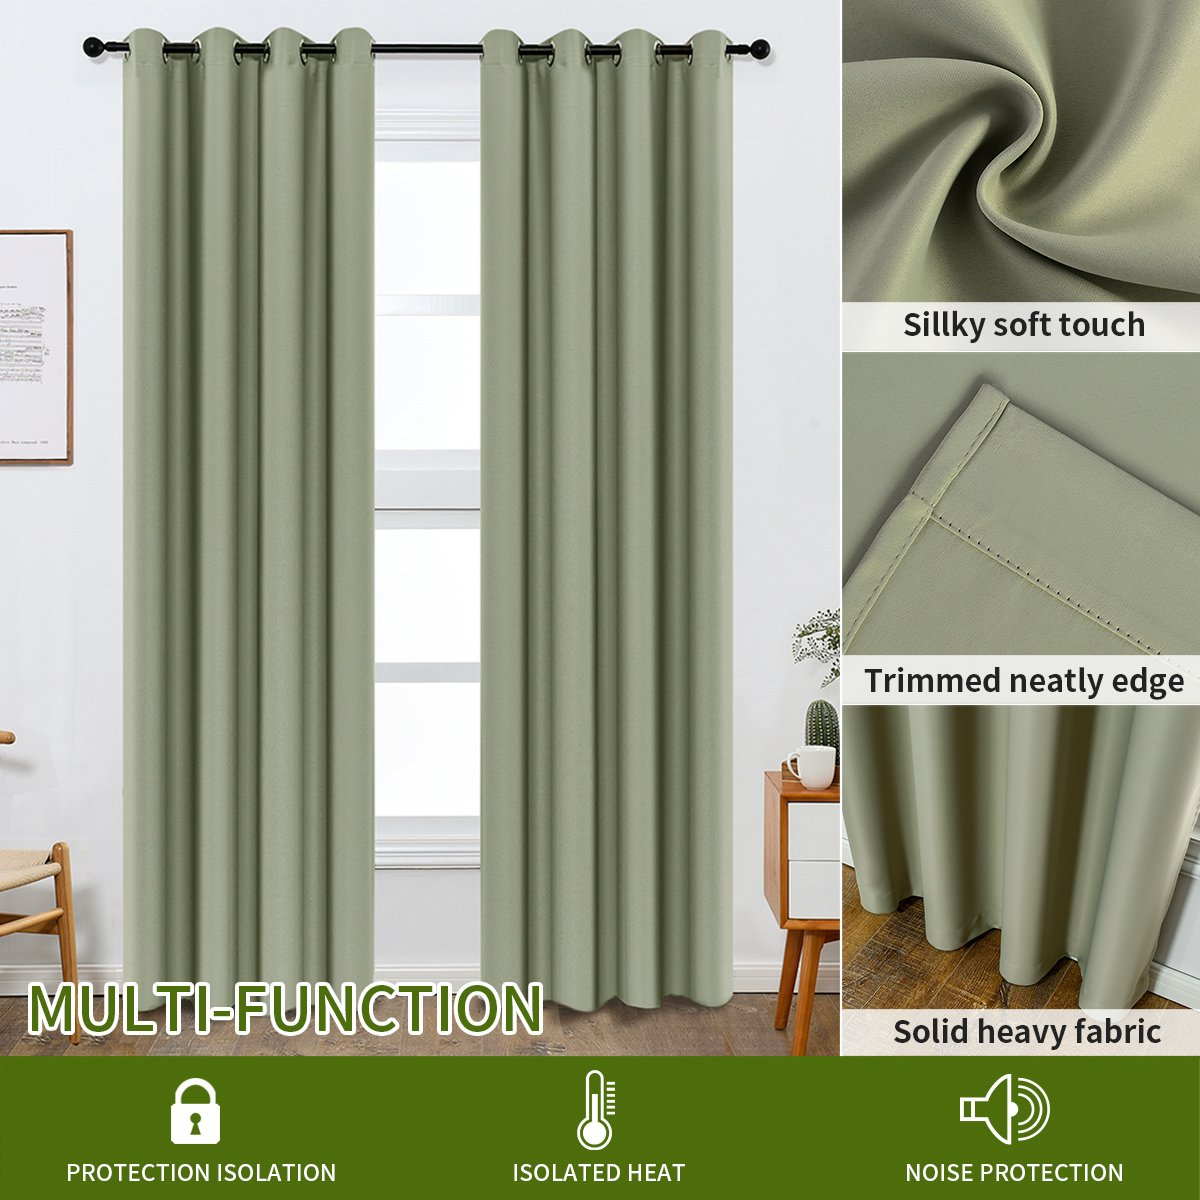 Colokey Shade Insulation Curtain for Bedroom Living Room Balcony Curtain,Peach Pink,52x84-inch,1 Panel